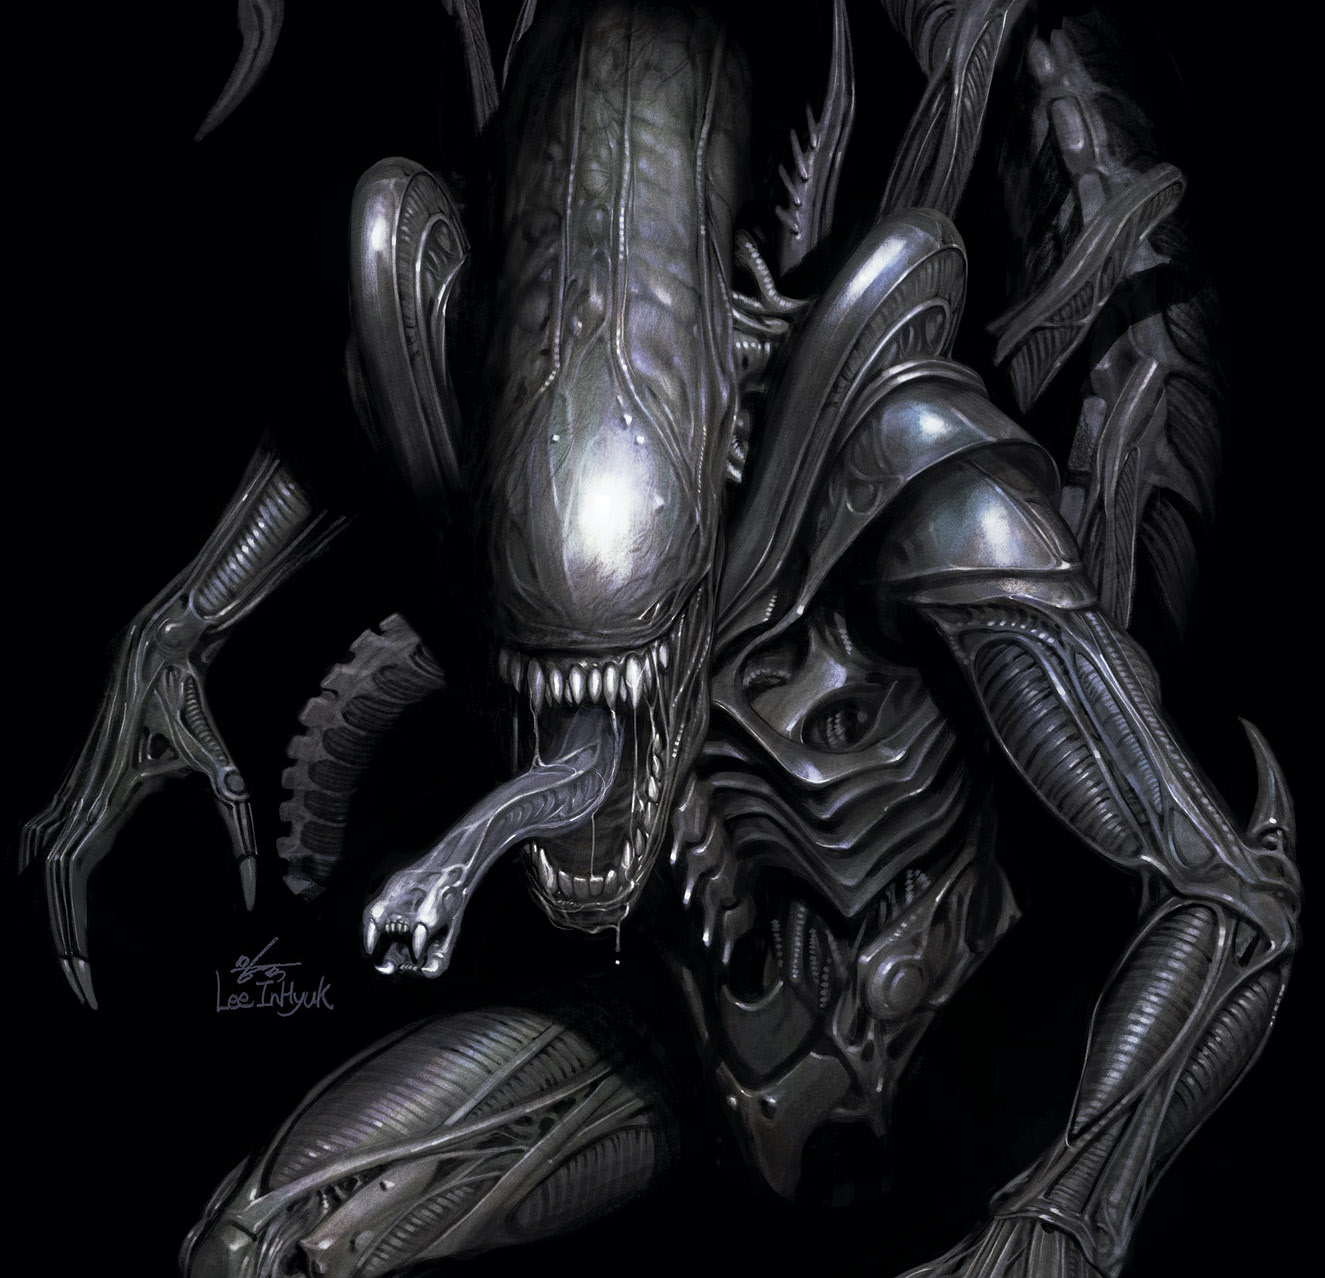 Marvel Comics launching all-new 'Alien' stories March 2021